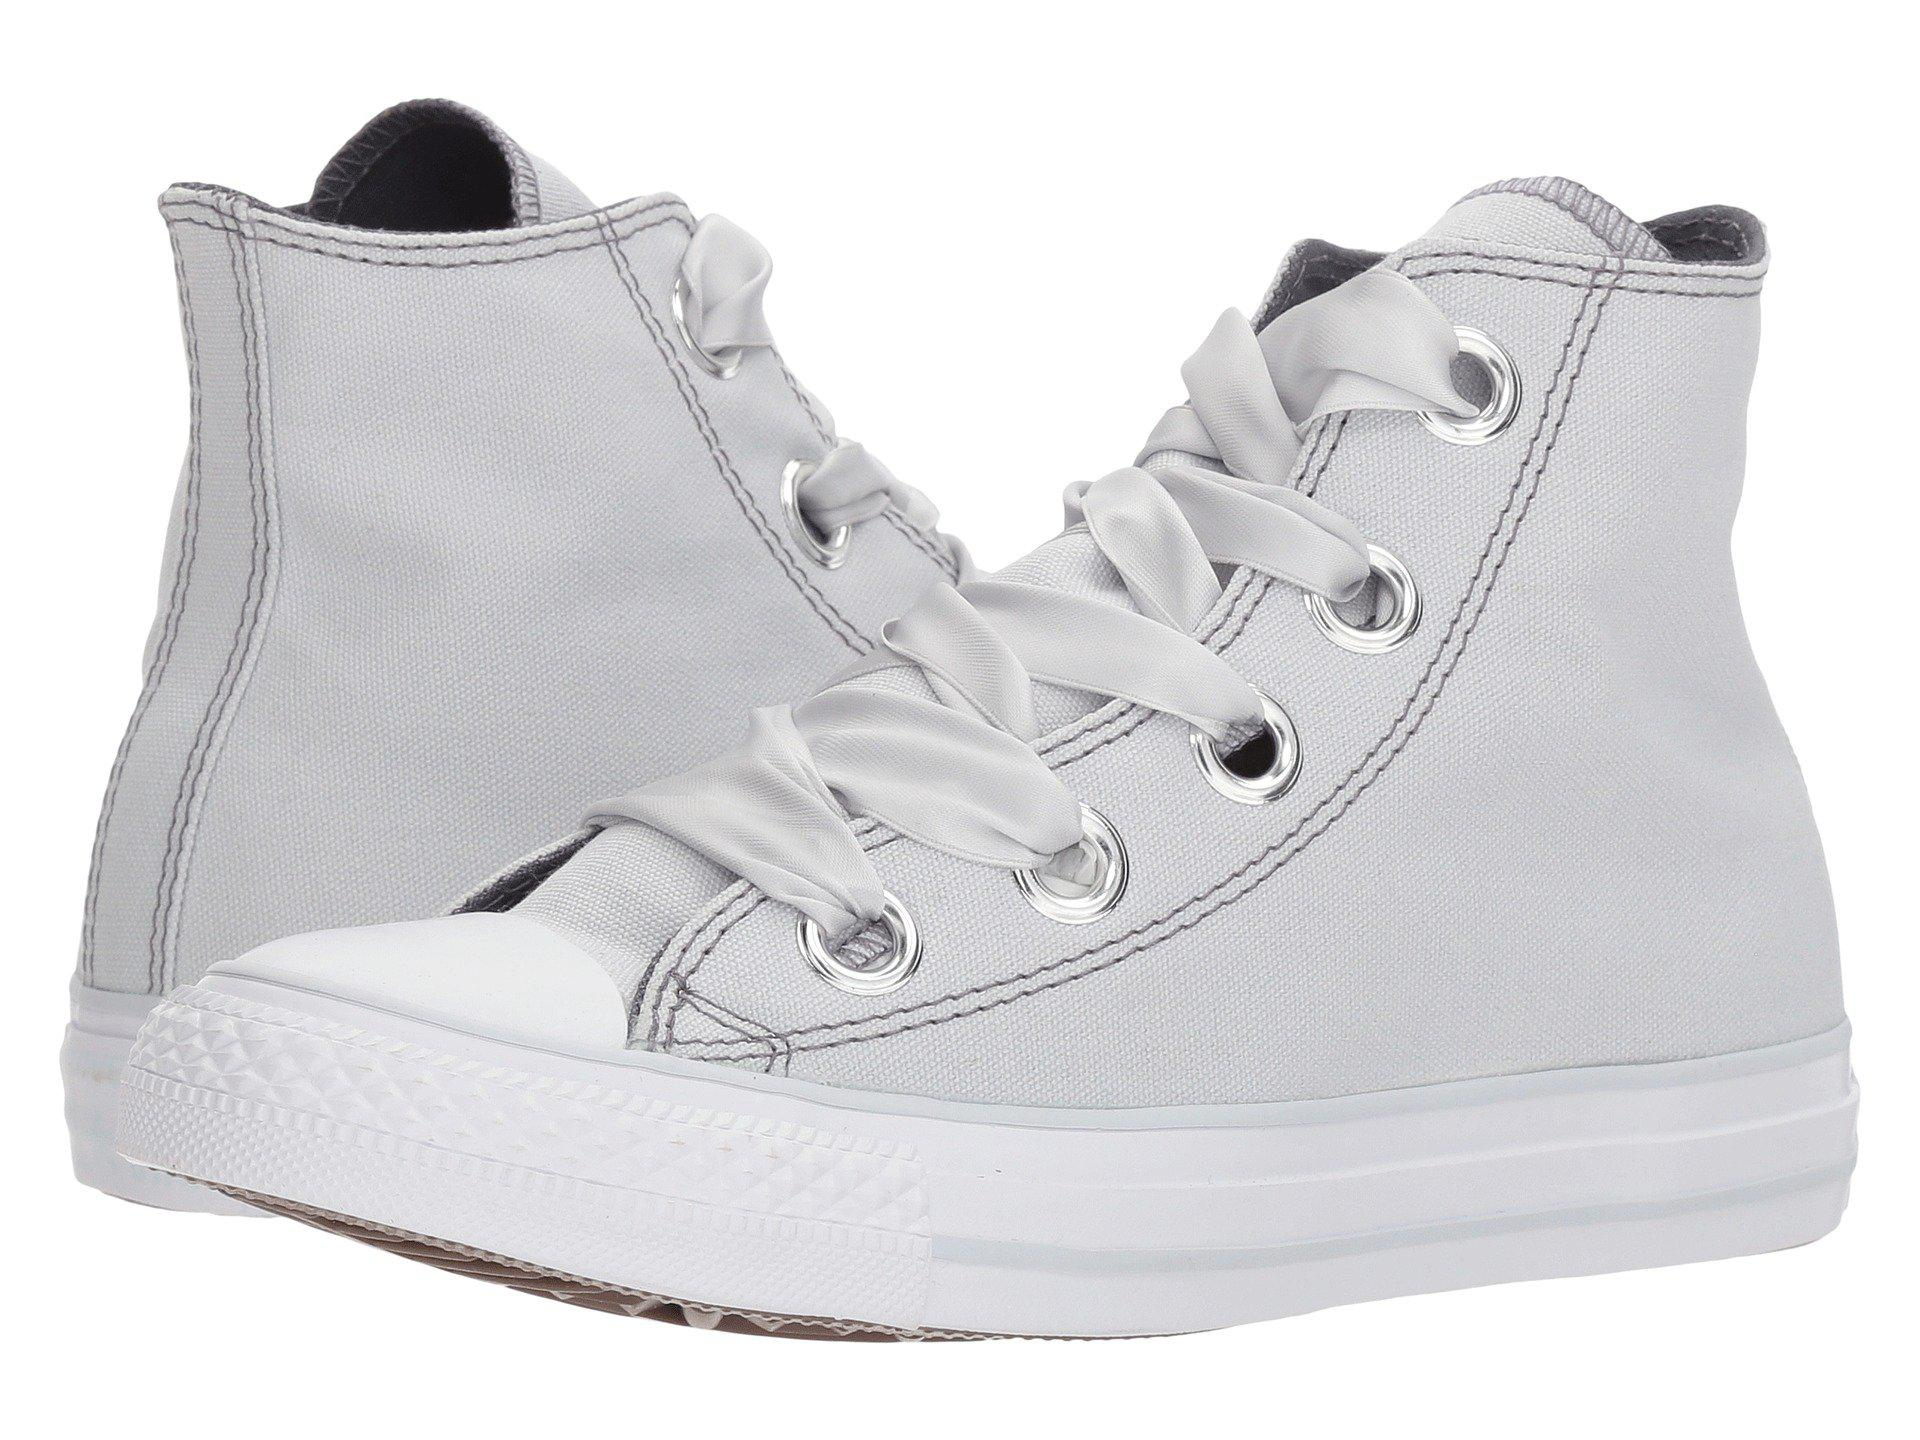 5b55f919016 Lyst - Converse Chuck Taylor® All Star Pastel Canvas Big Eyelet Hi ...